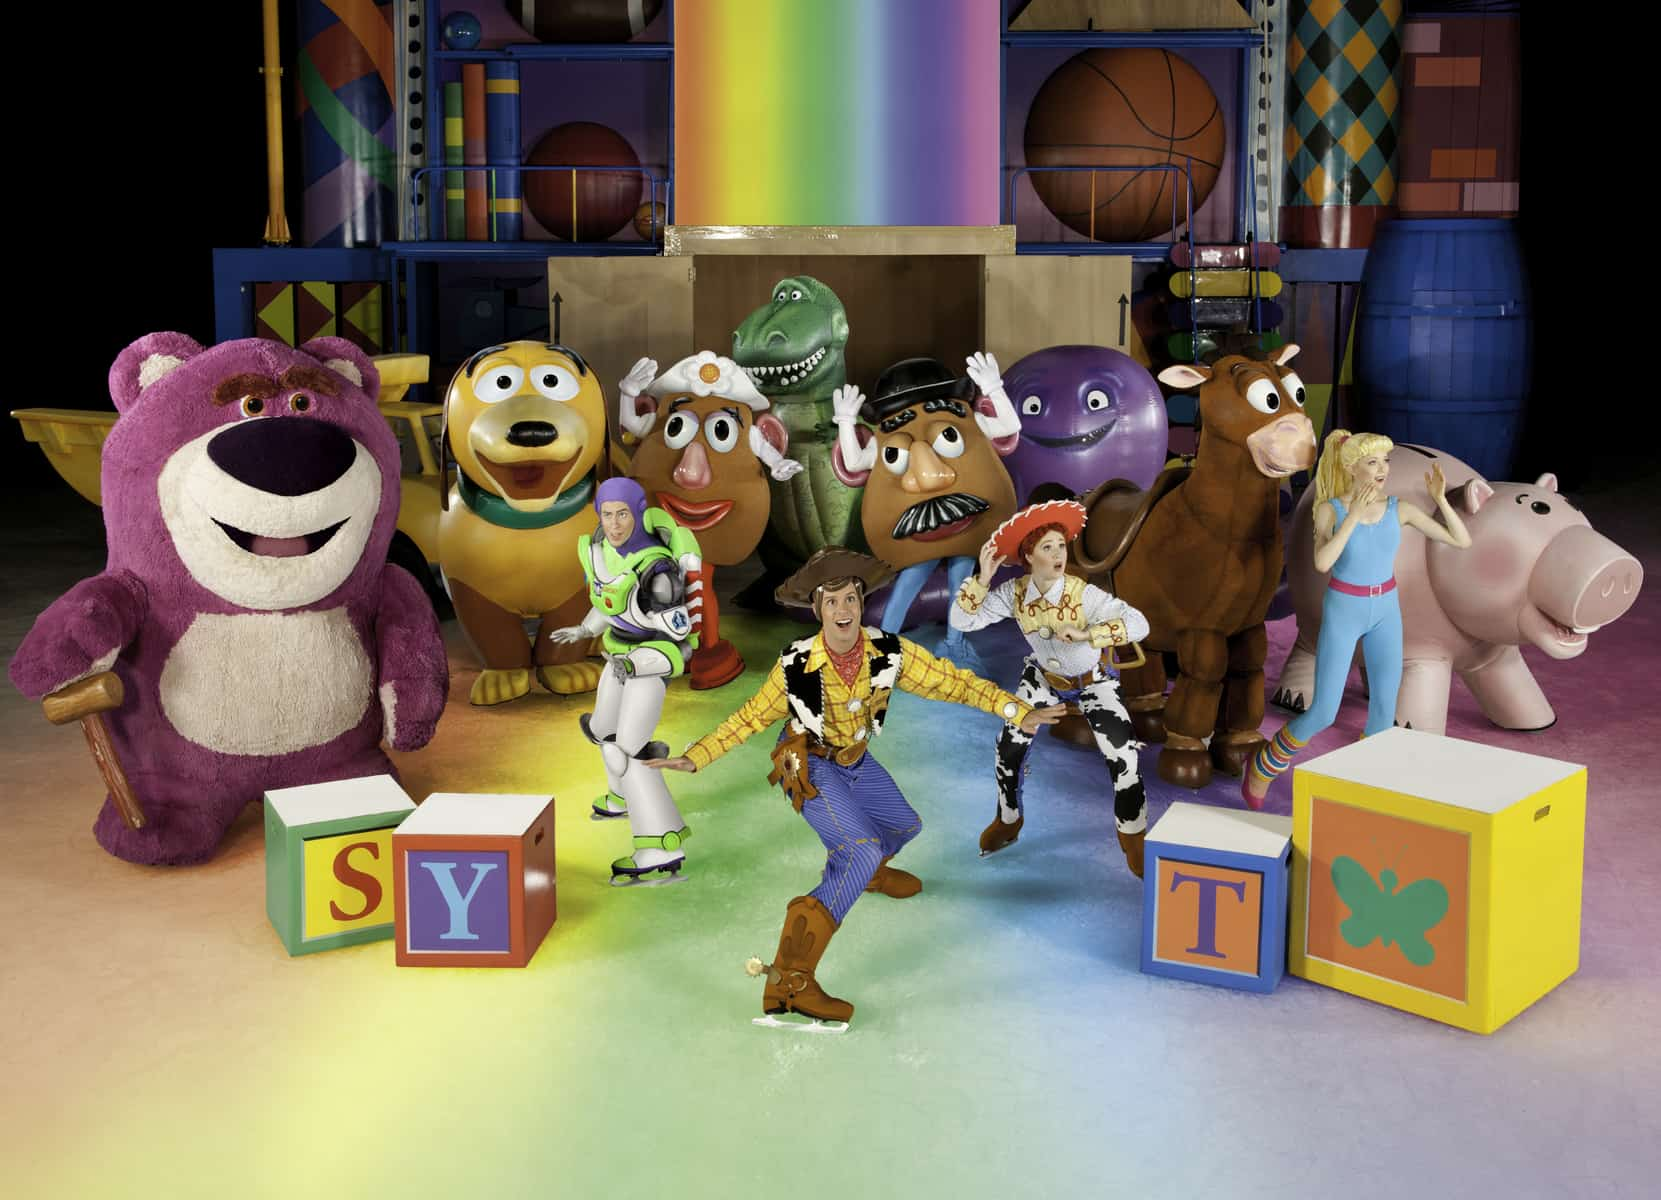 Numerous characters from toy story on ice skates as part of Disney on Ice Worlds of Enchantment